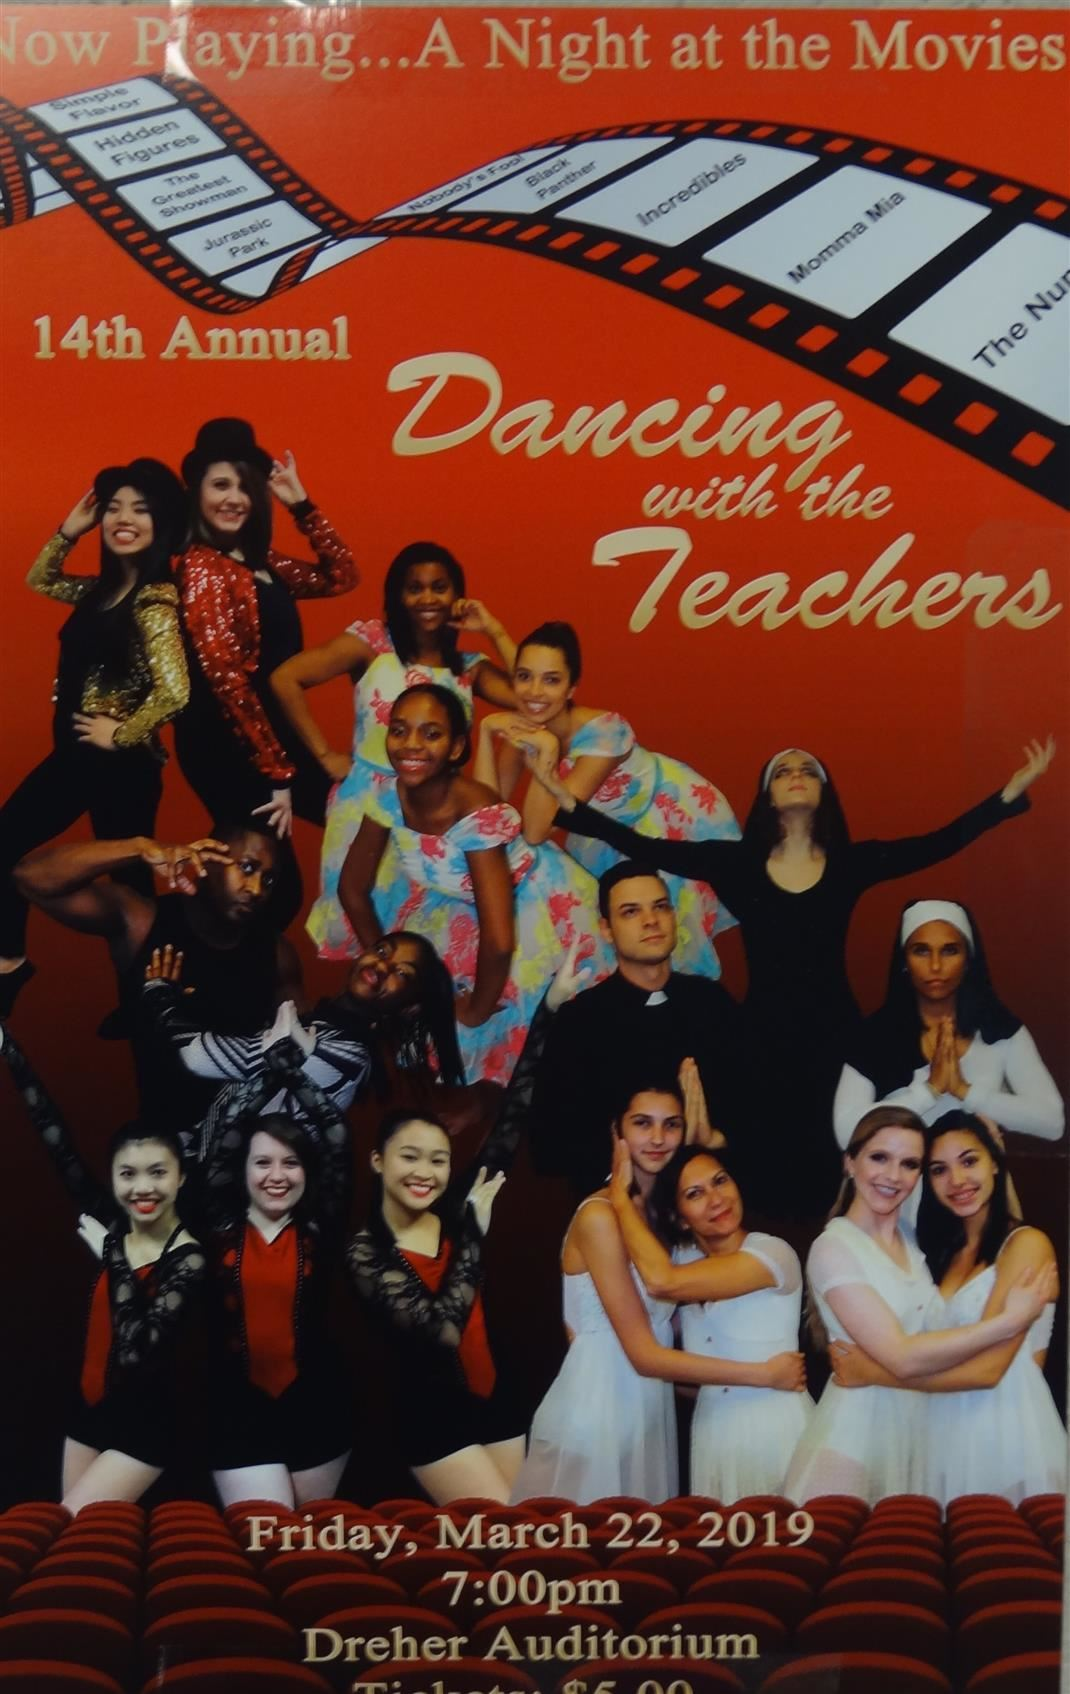 Dancing with the Teachers is Friday, March 22, at 7 PM.